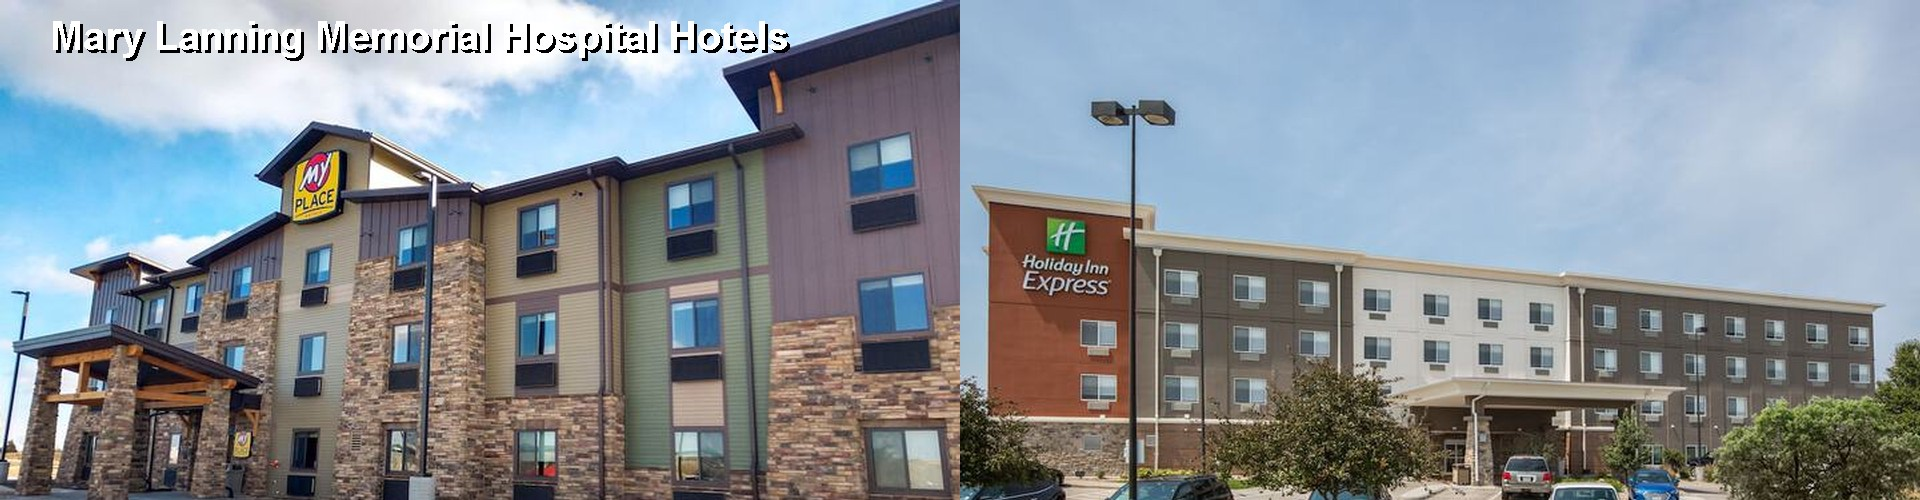 5 Best Hotels near Mary Lanning Memorial Hospital